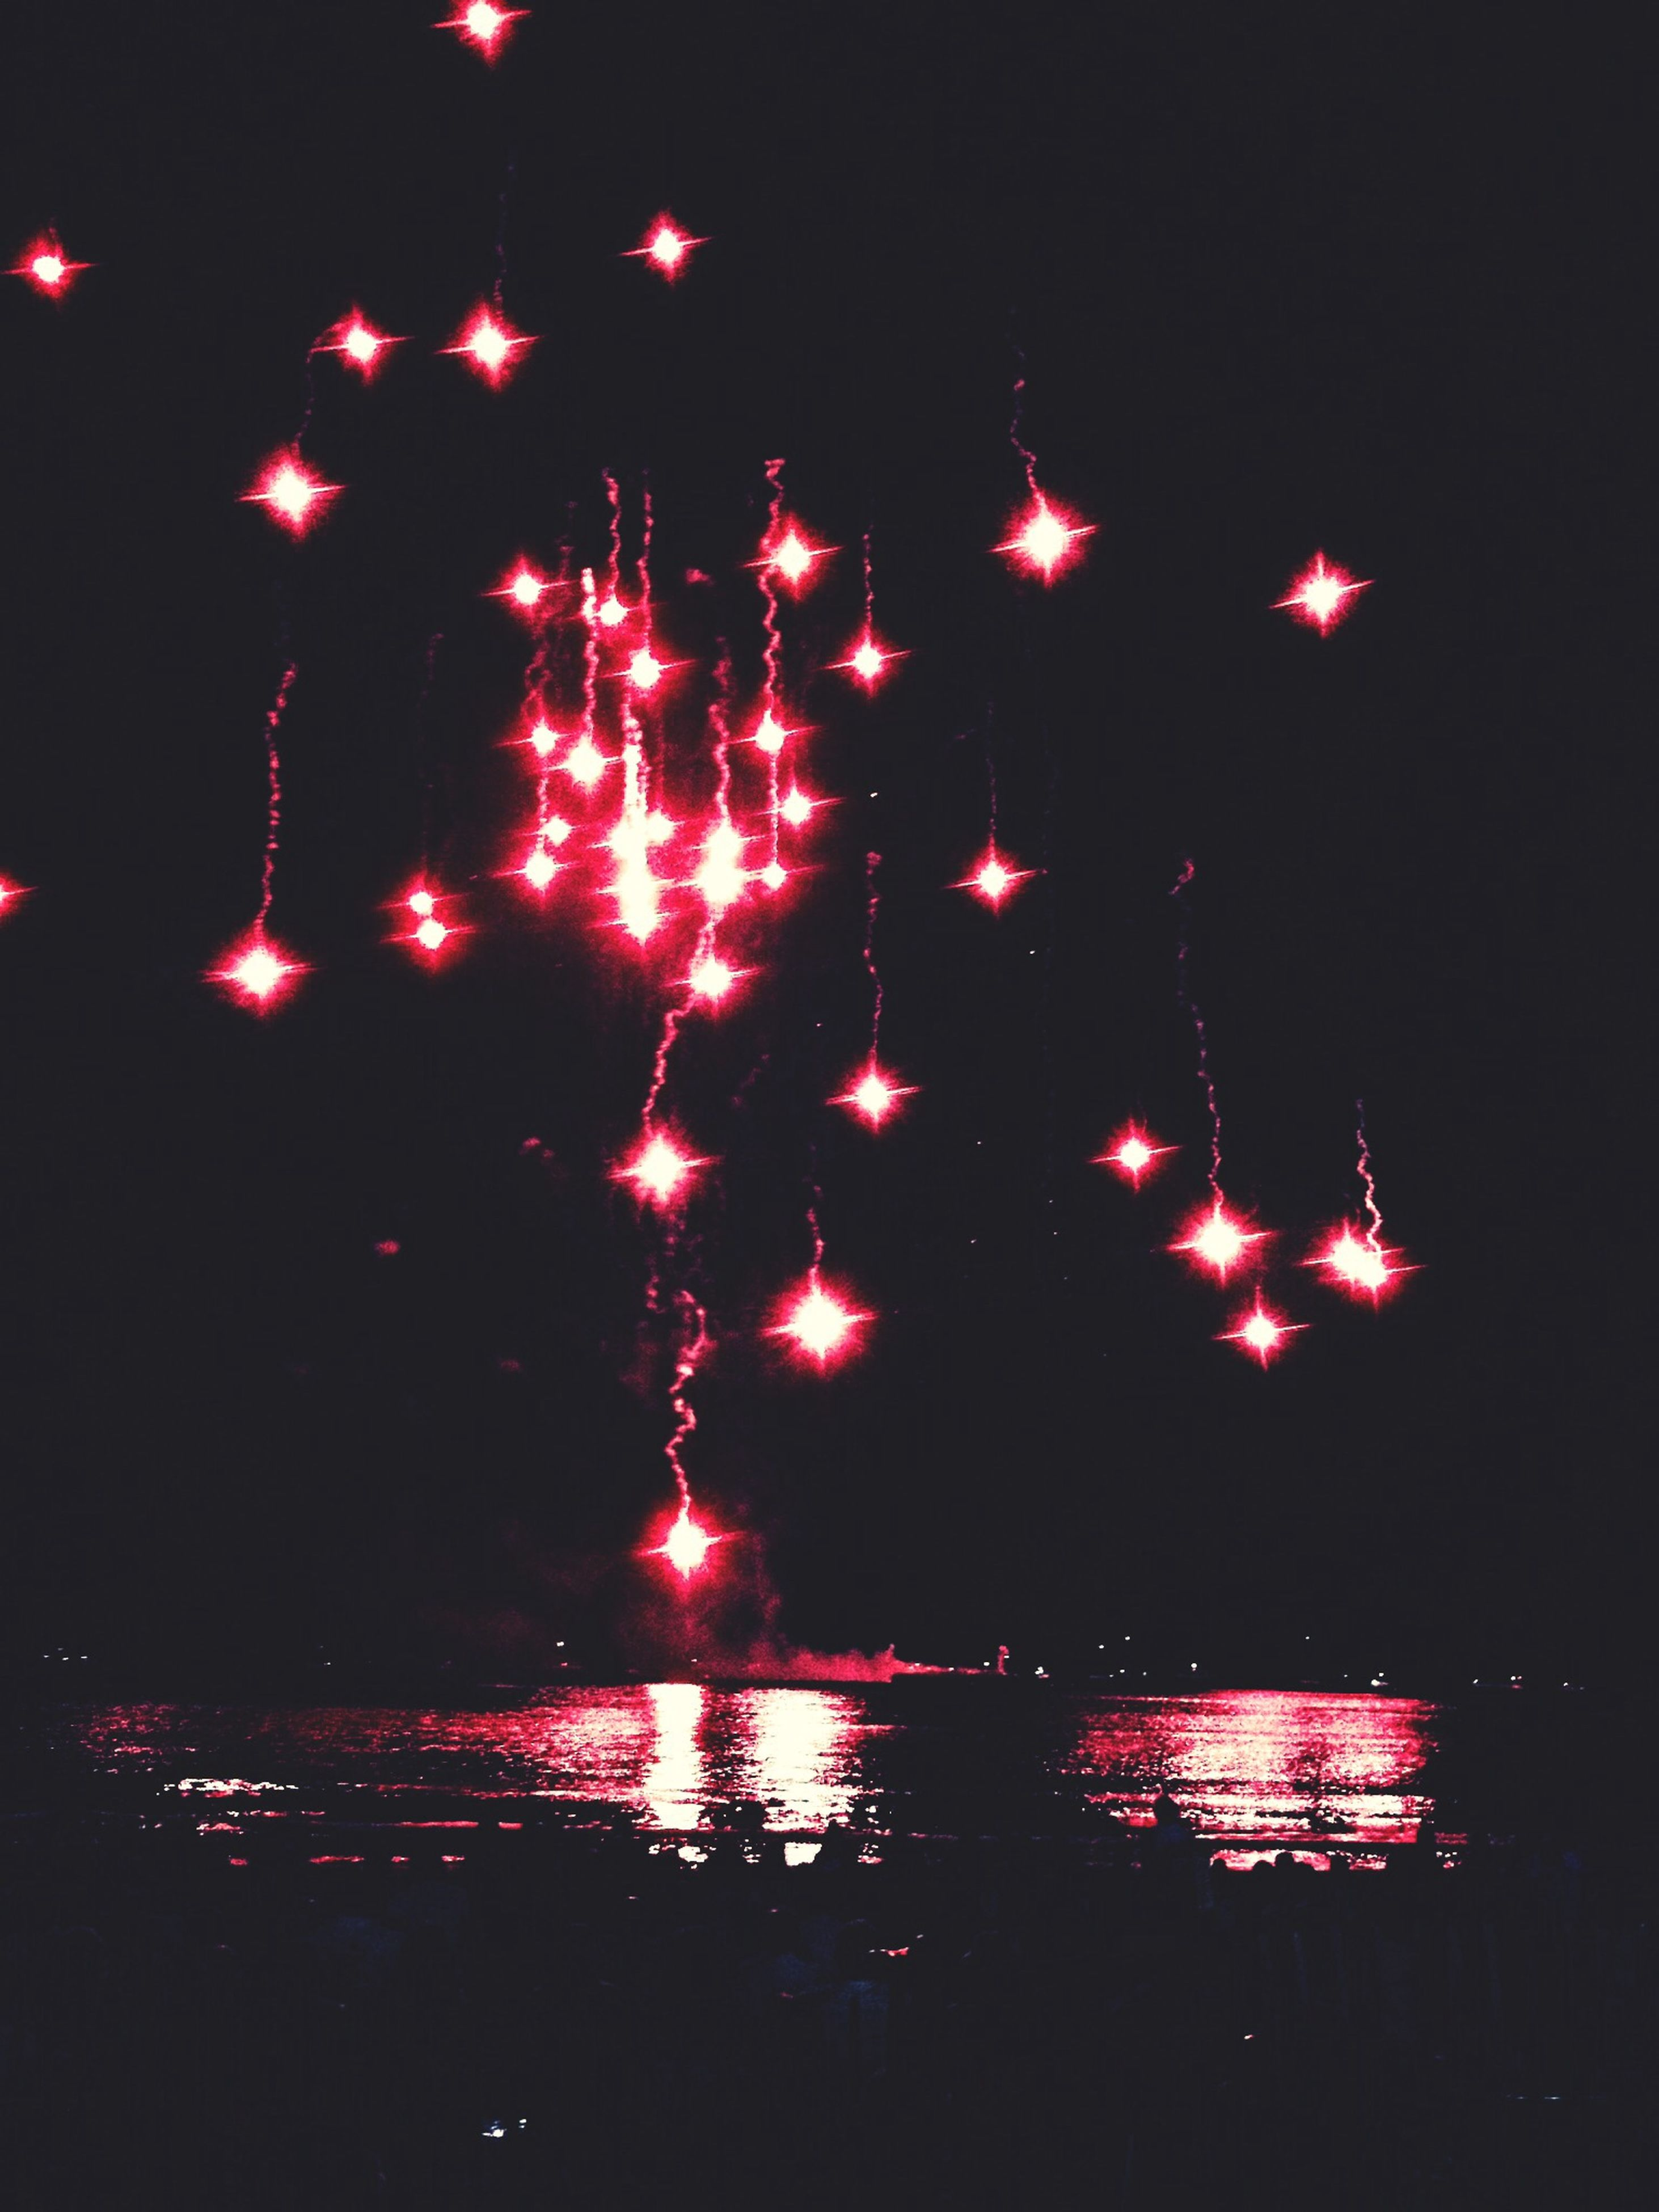 night, illuminated, water, celebration, glowing, firework display, motion, arts culture and entertainment, long exposure, event, sky, reflection, exploding, firework - man made object, multi colored, sea, red, waterfront, outdoors, dark